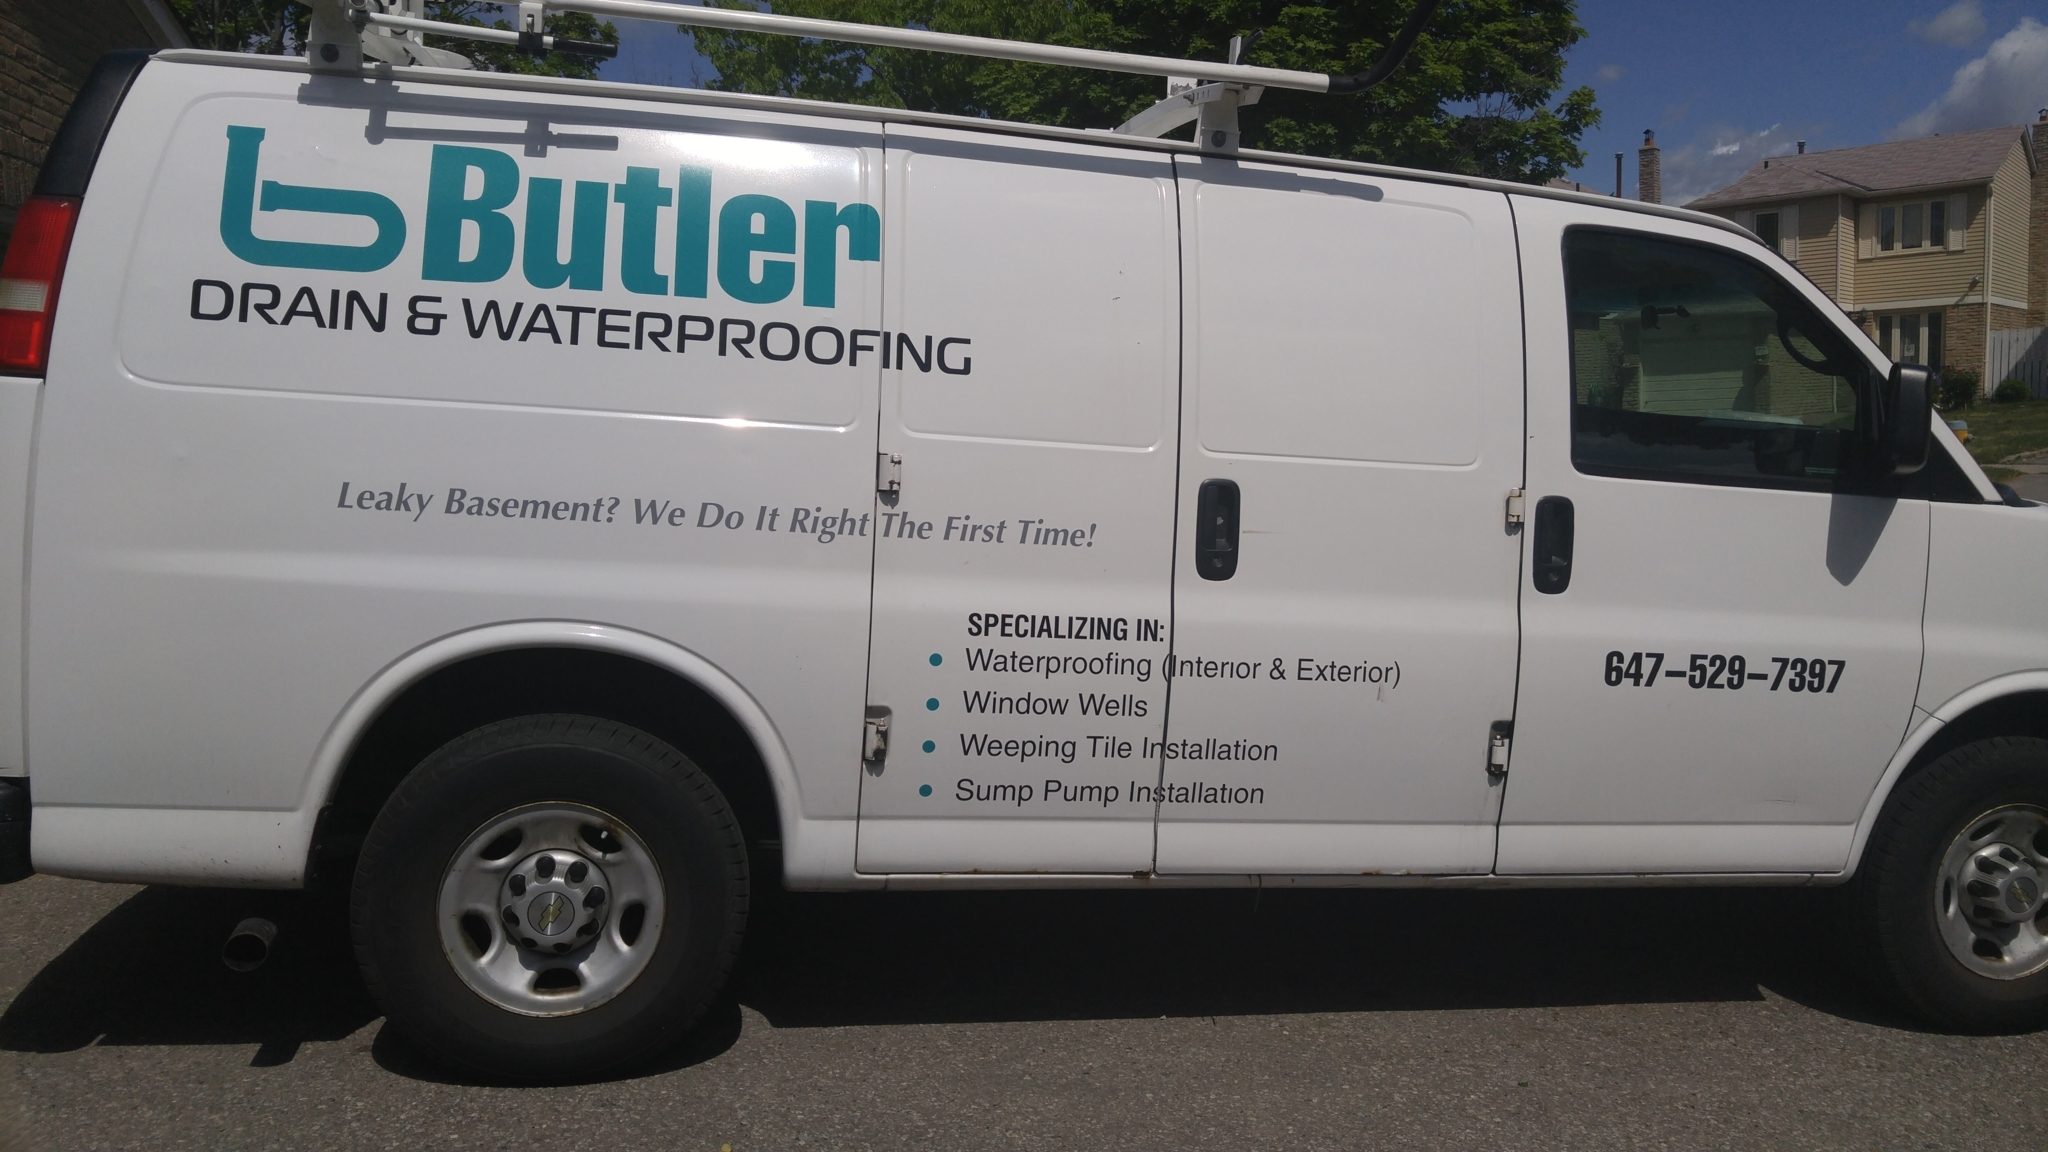 Butler Drain & Waterproofing - Scarborough, ON M1B 2Z3 - (647)529-7397 | ShowMeLocal.com